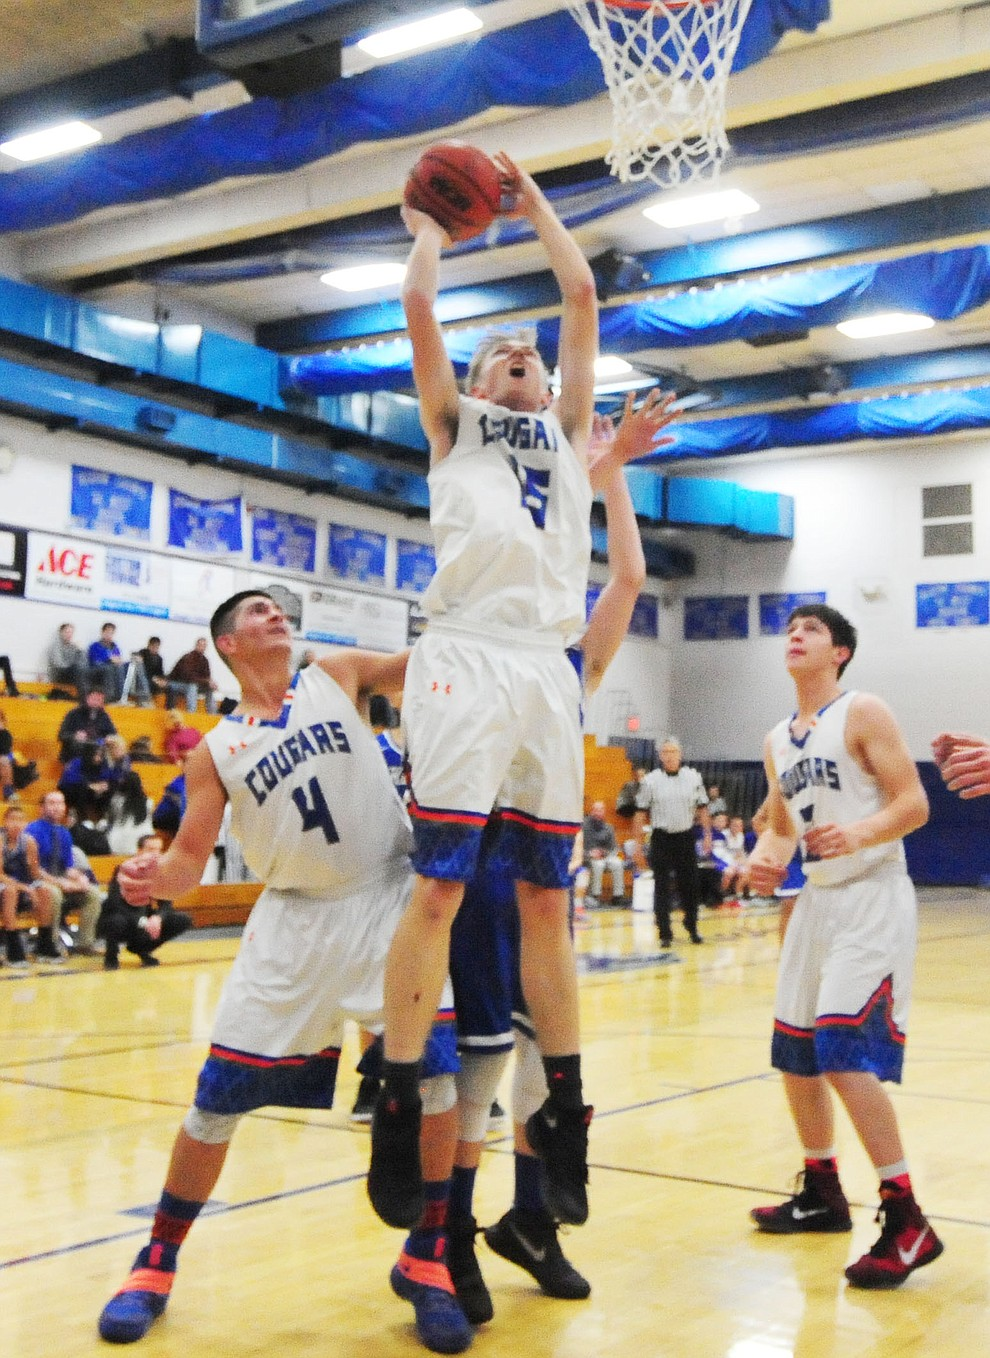 Chino Valley's Gavin Cluff gets inside position as the Cougars take on the Kingman Bulldogs Tuesday, January 10 in Chino Vallley. (Les Stukenberg/The Daily Courier)